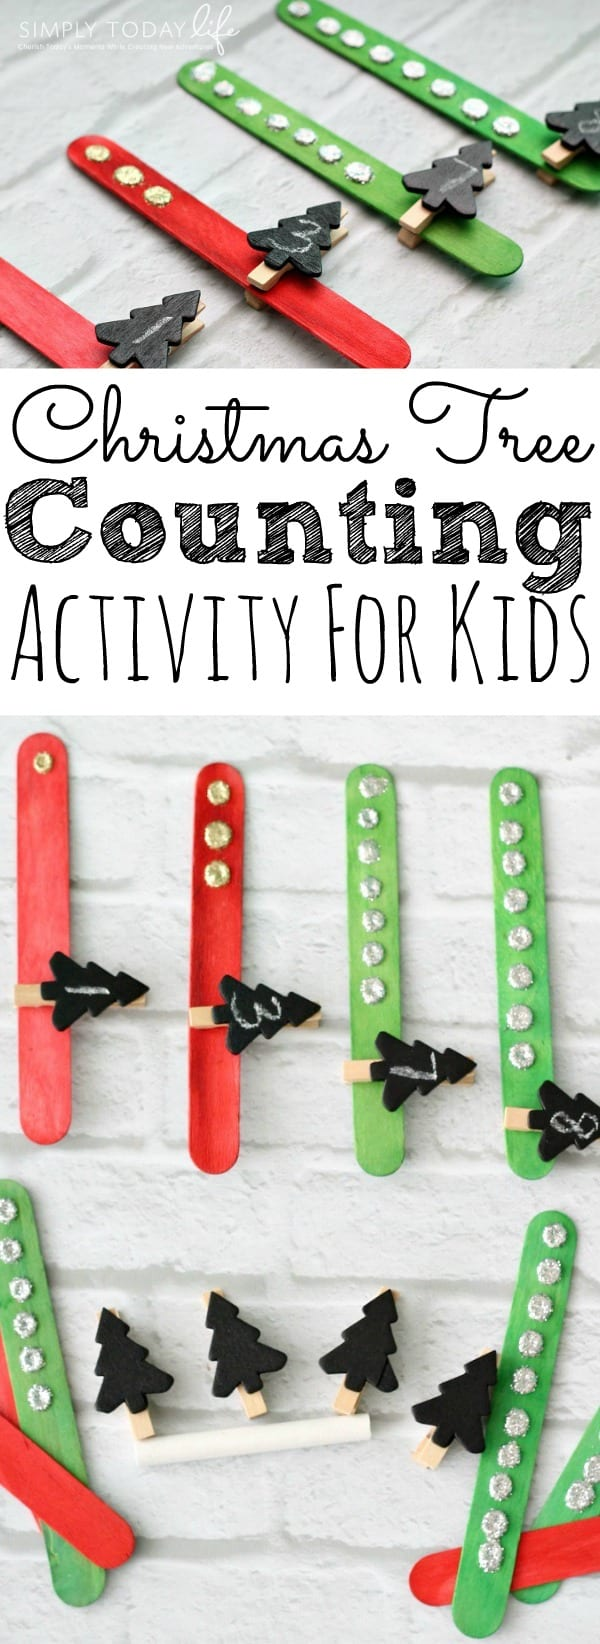 Christmas Tree Counting Activity For Kids